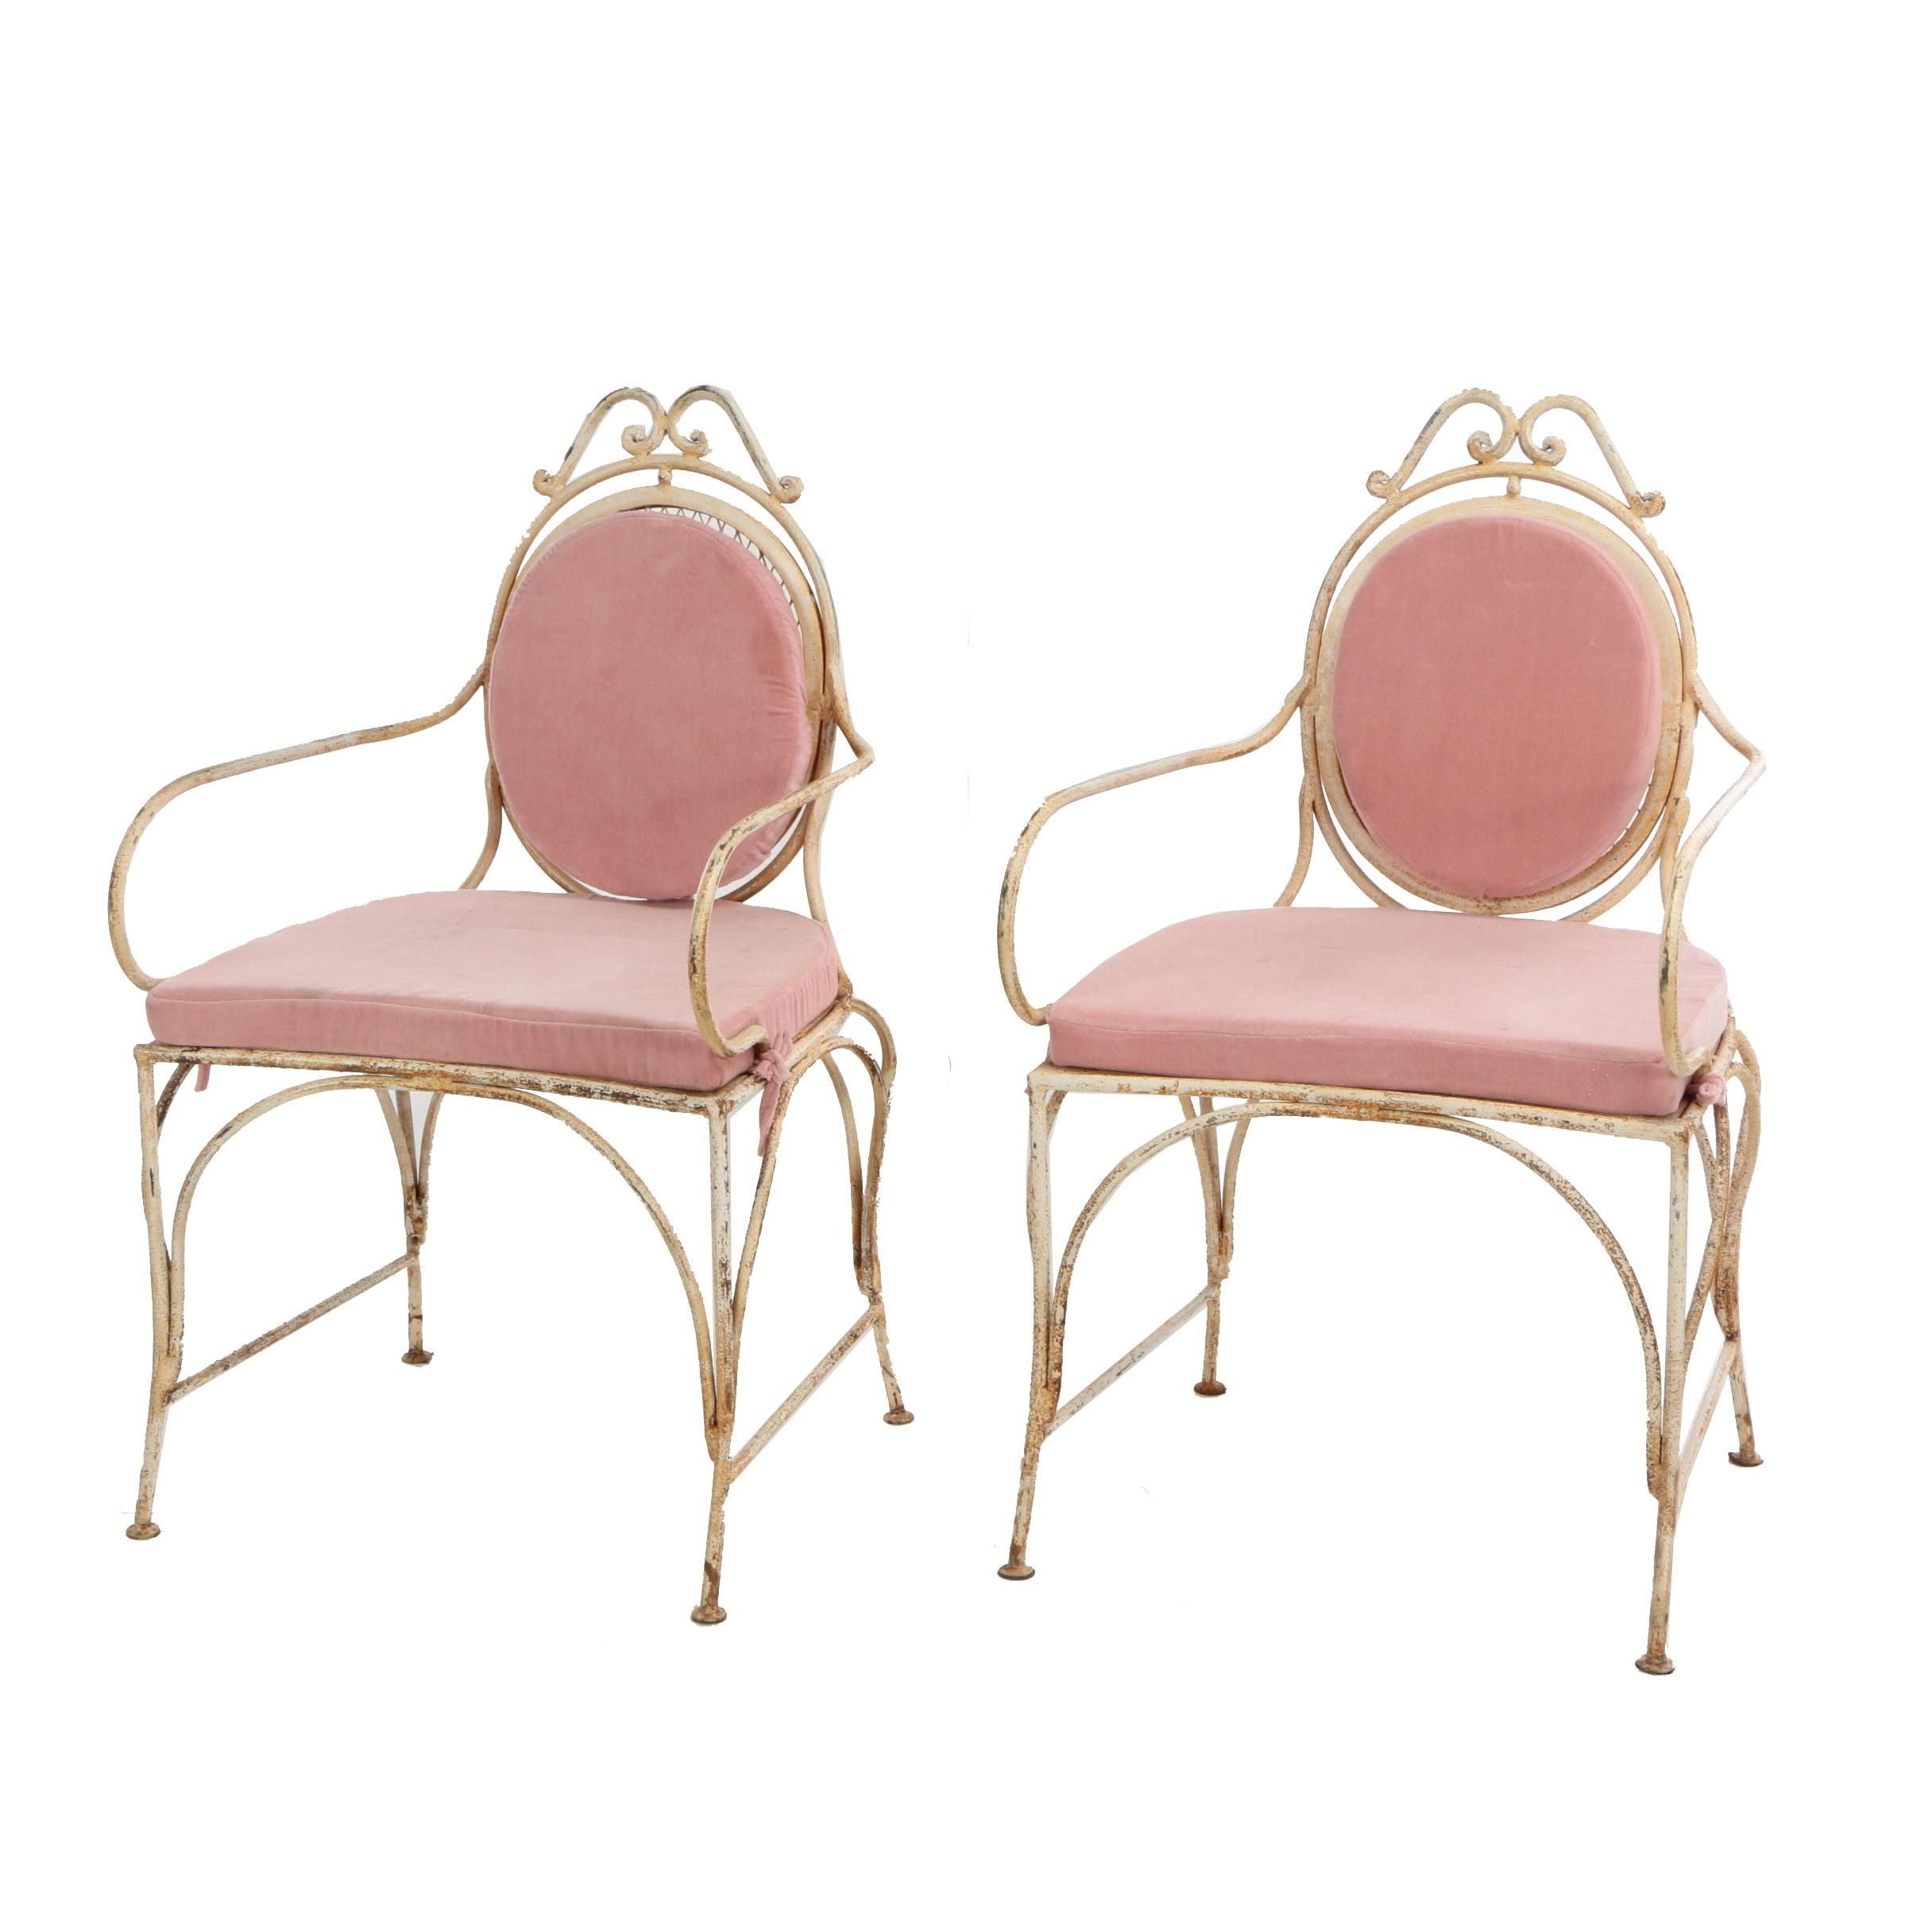 "French Style ""Veranda"" Metal Armchairs with Removable Velvet Cushions, 21st Cent"